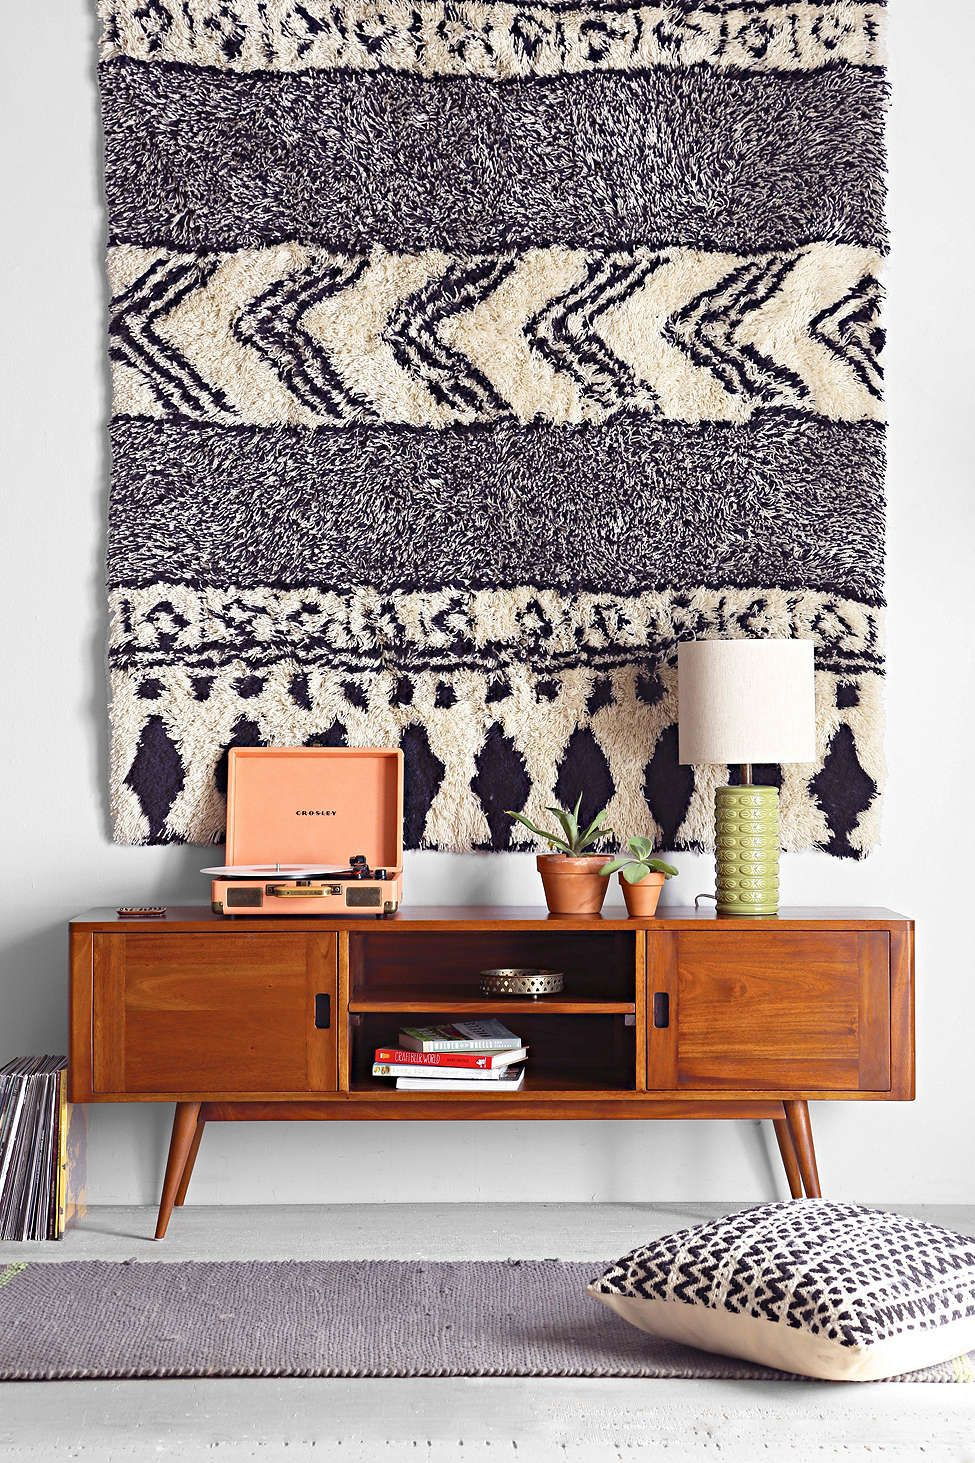 Display Rugs As Wall Art You Don T Need To Splurge On A Woven Tapestry Get In The Textural Trend Try Hanging Small Rug For Similar Effect